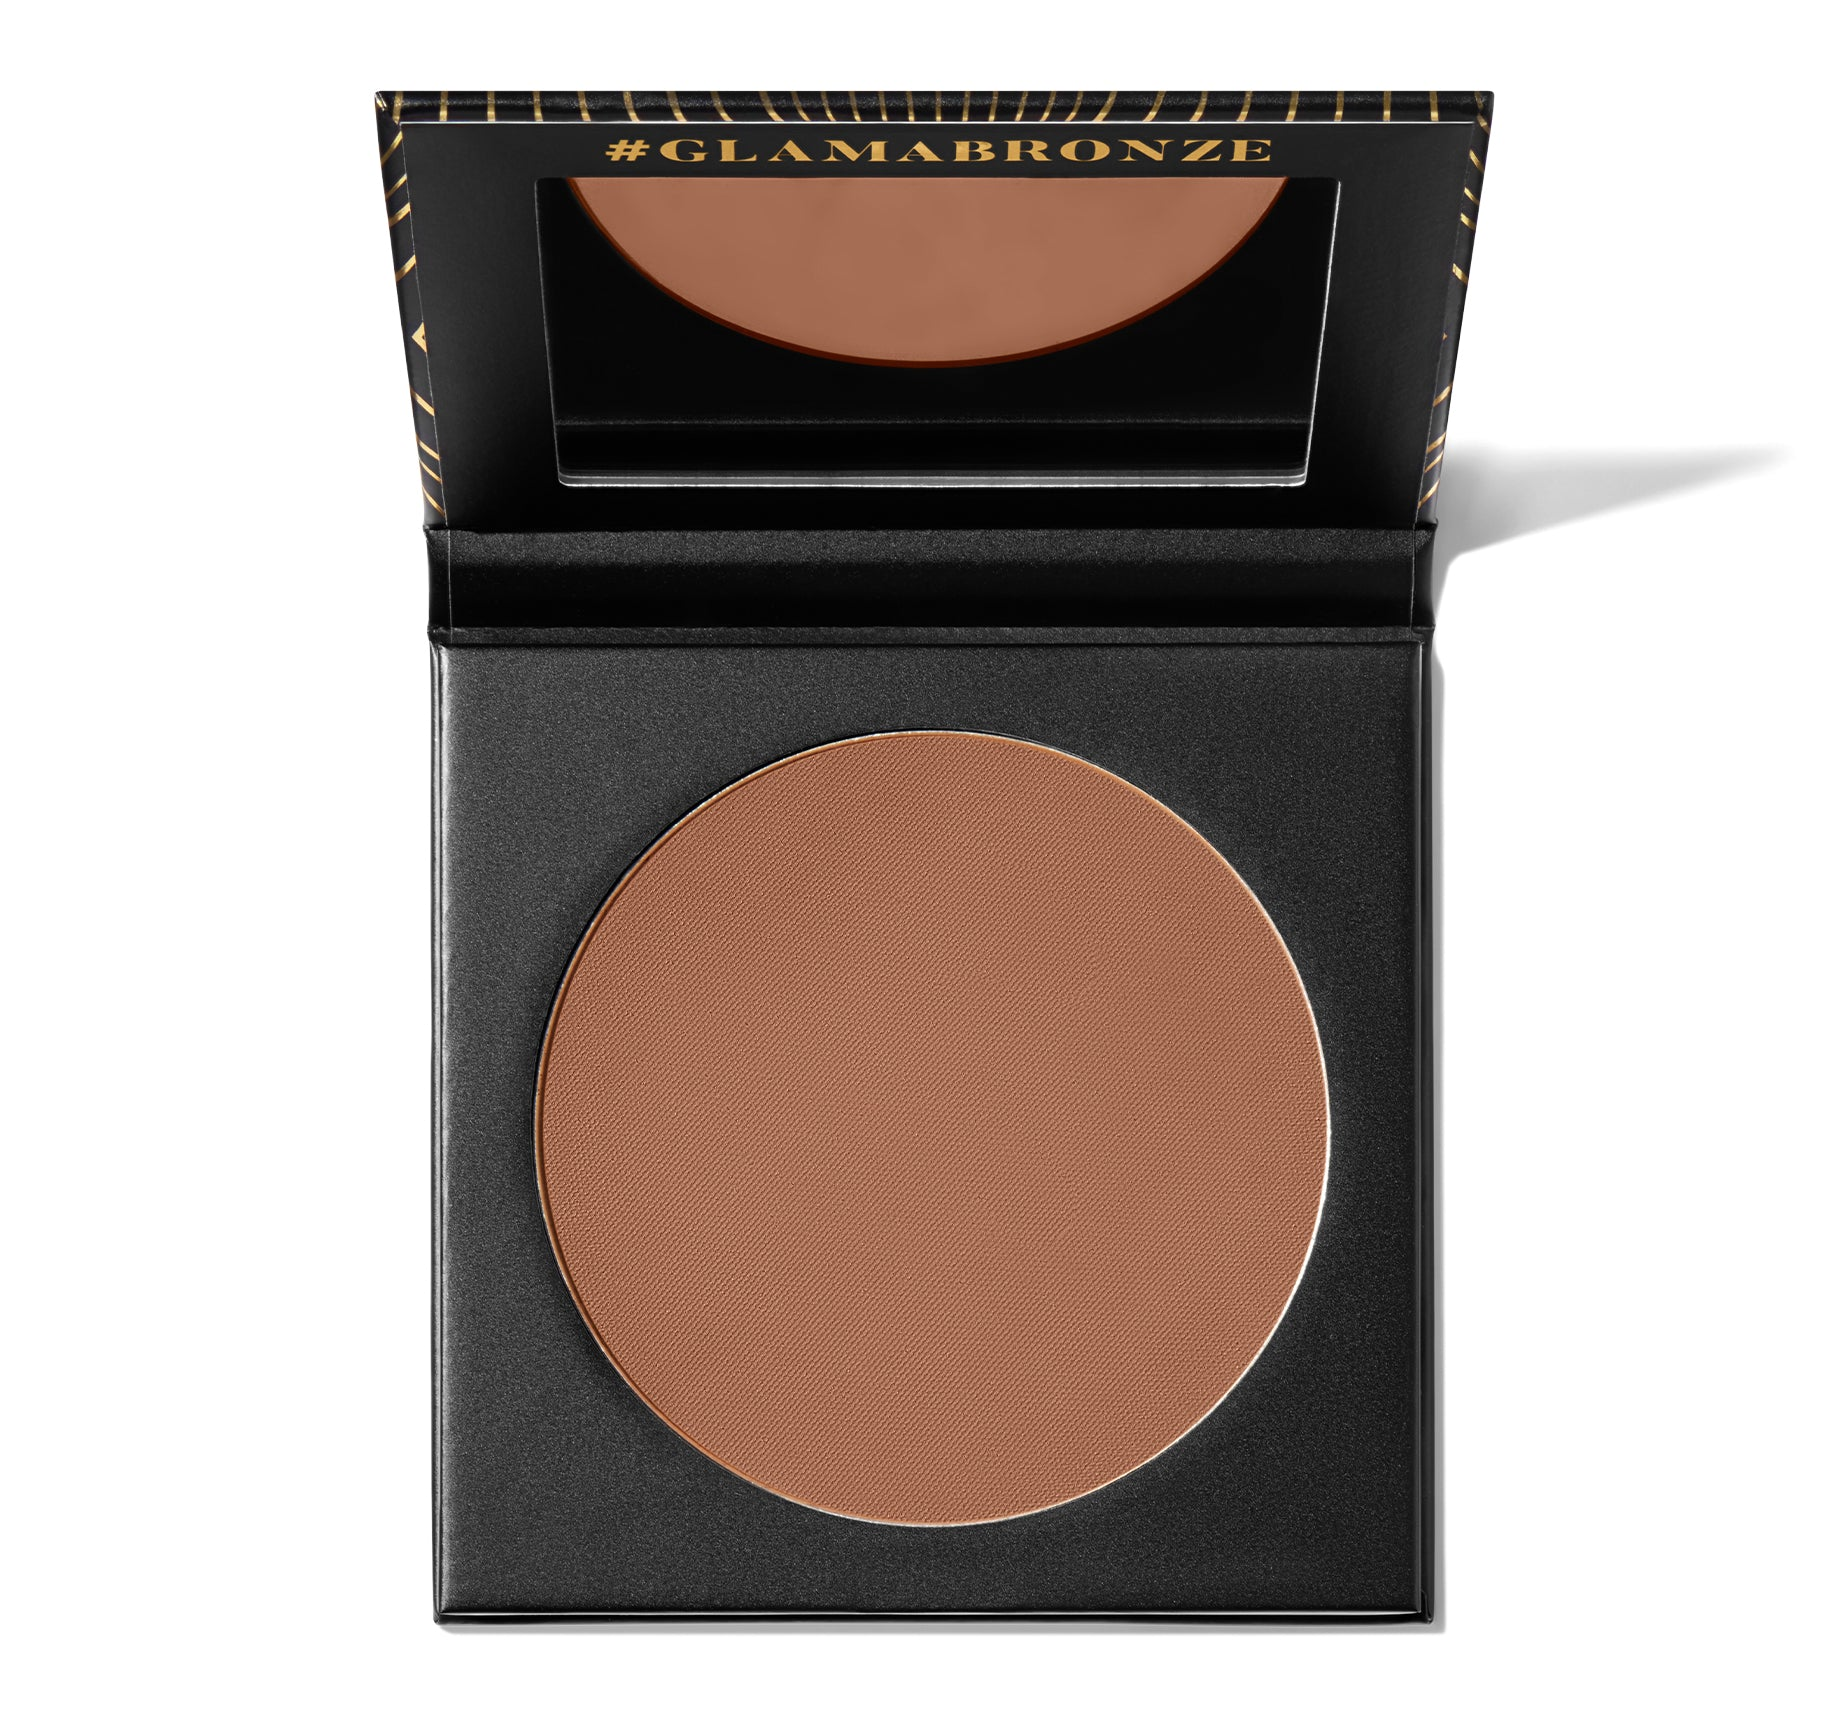 GLAMABRONZE FACE & BODY BRONZER - ORIGINATOR, view larger image